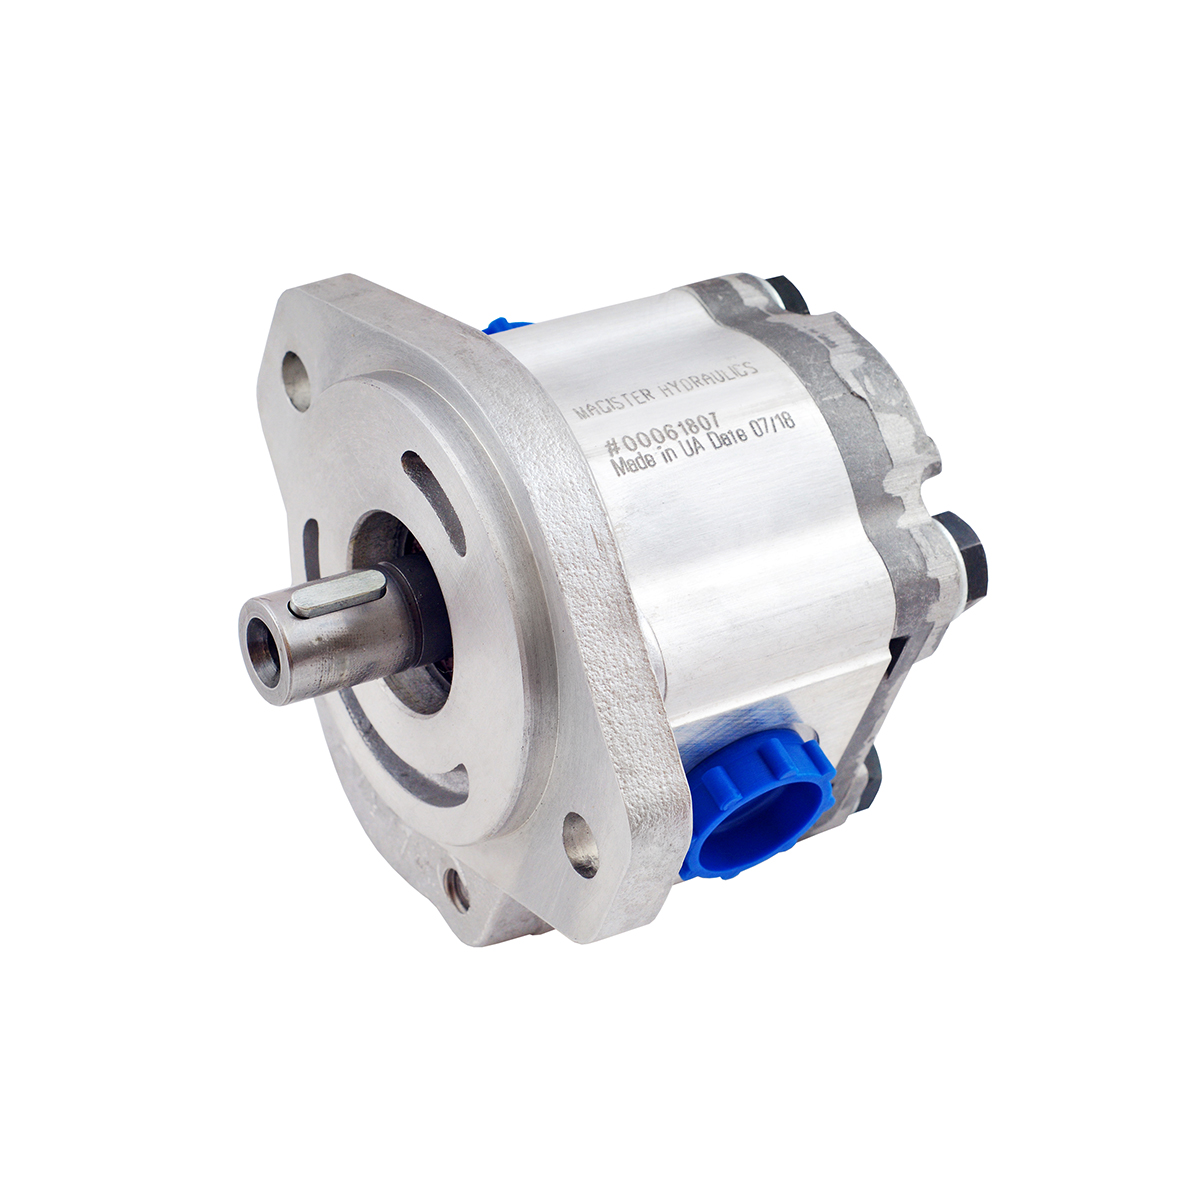 0.27 CID hydraulic gear pump, 3/4 keyed shaft counter-clockwise gear pump | Magister Hydraulics